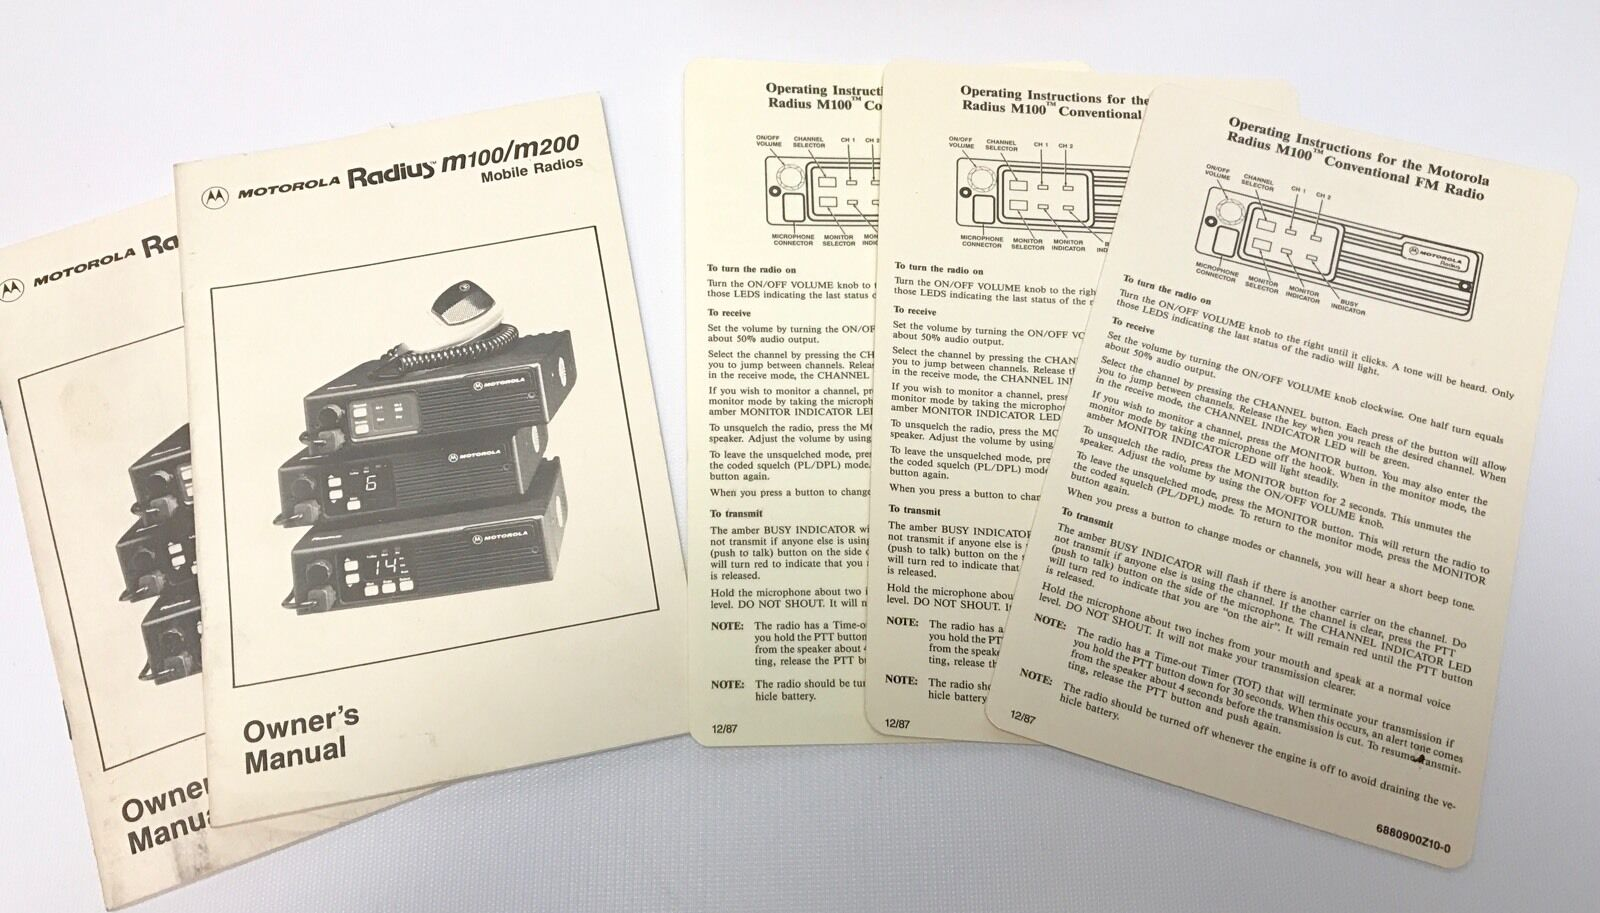 2 Motorola M100 M200 Radio Owner's Manual & 3 Operating Instruction Cards. Buy it now for 17.95